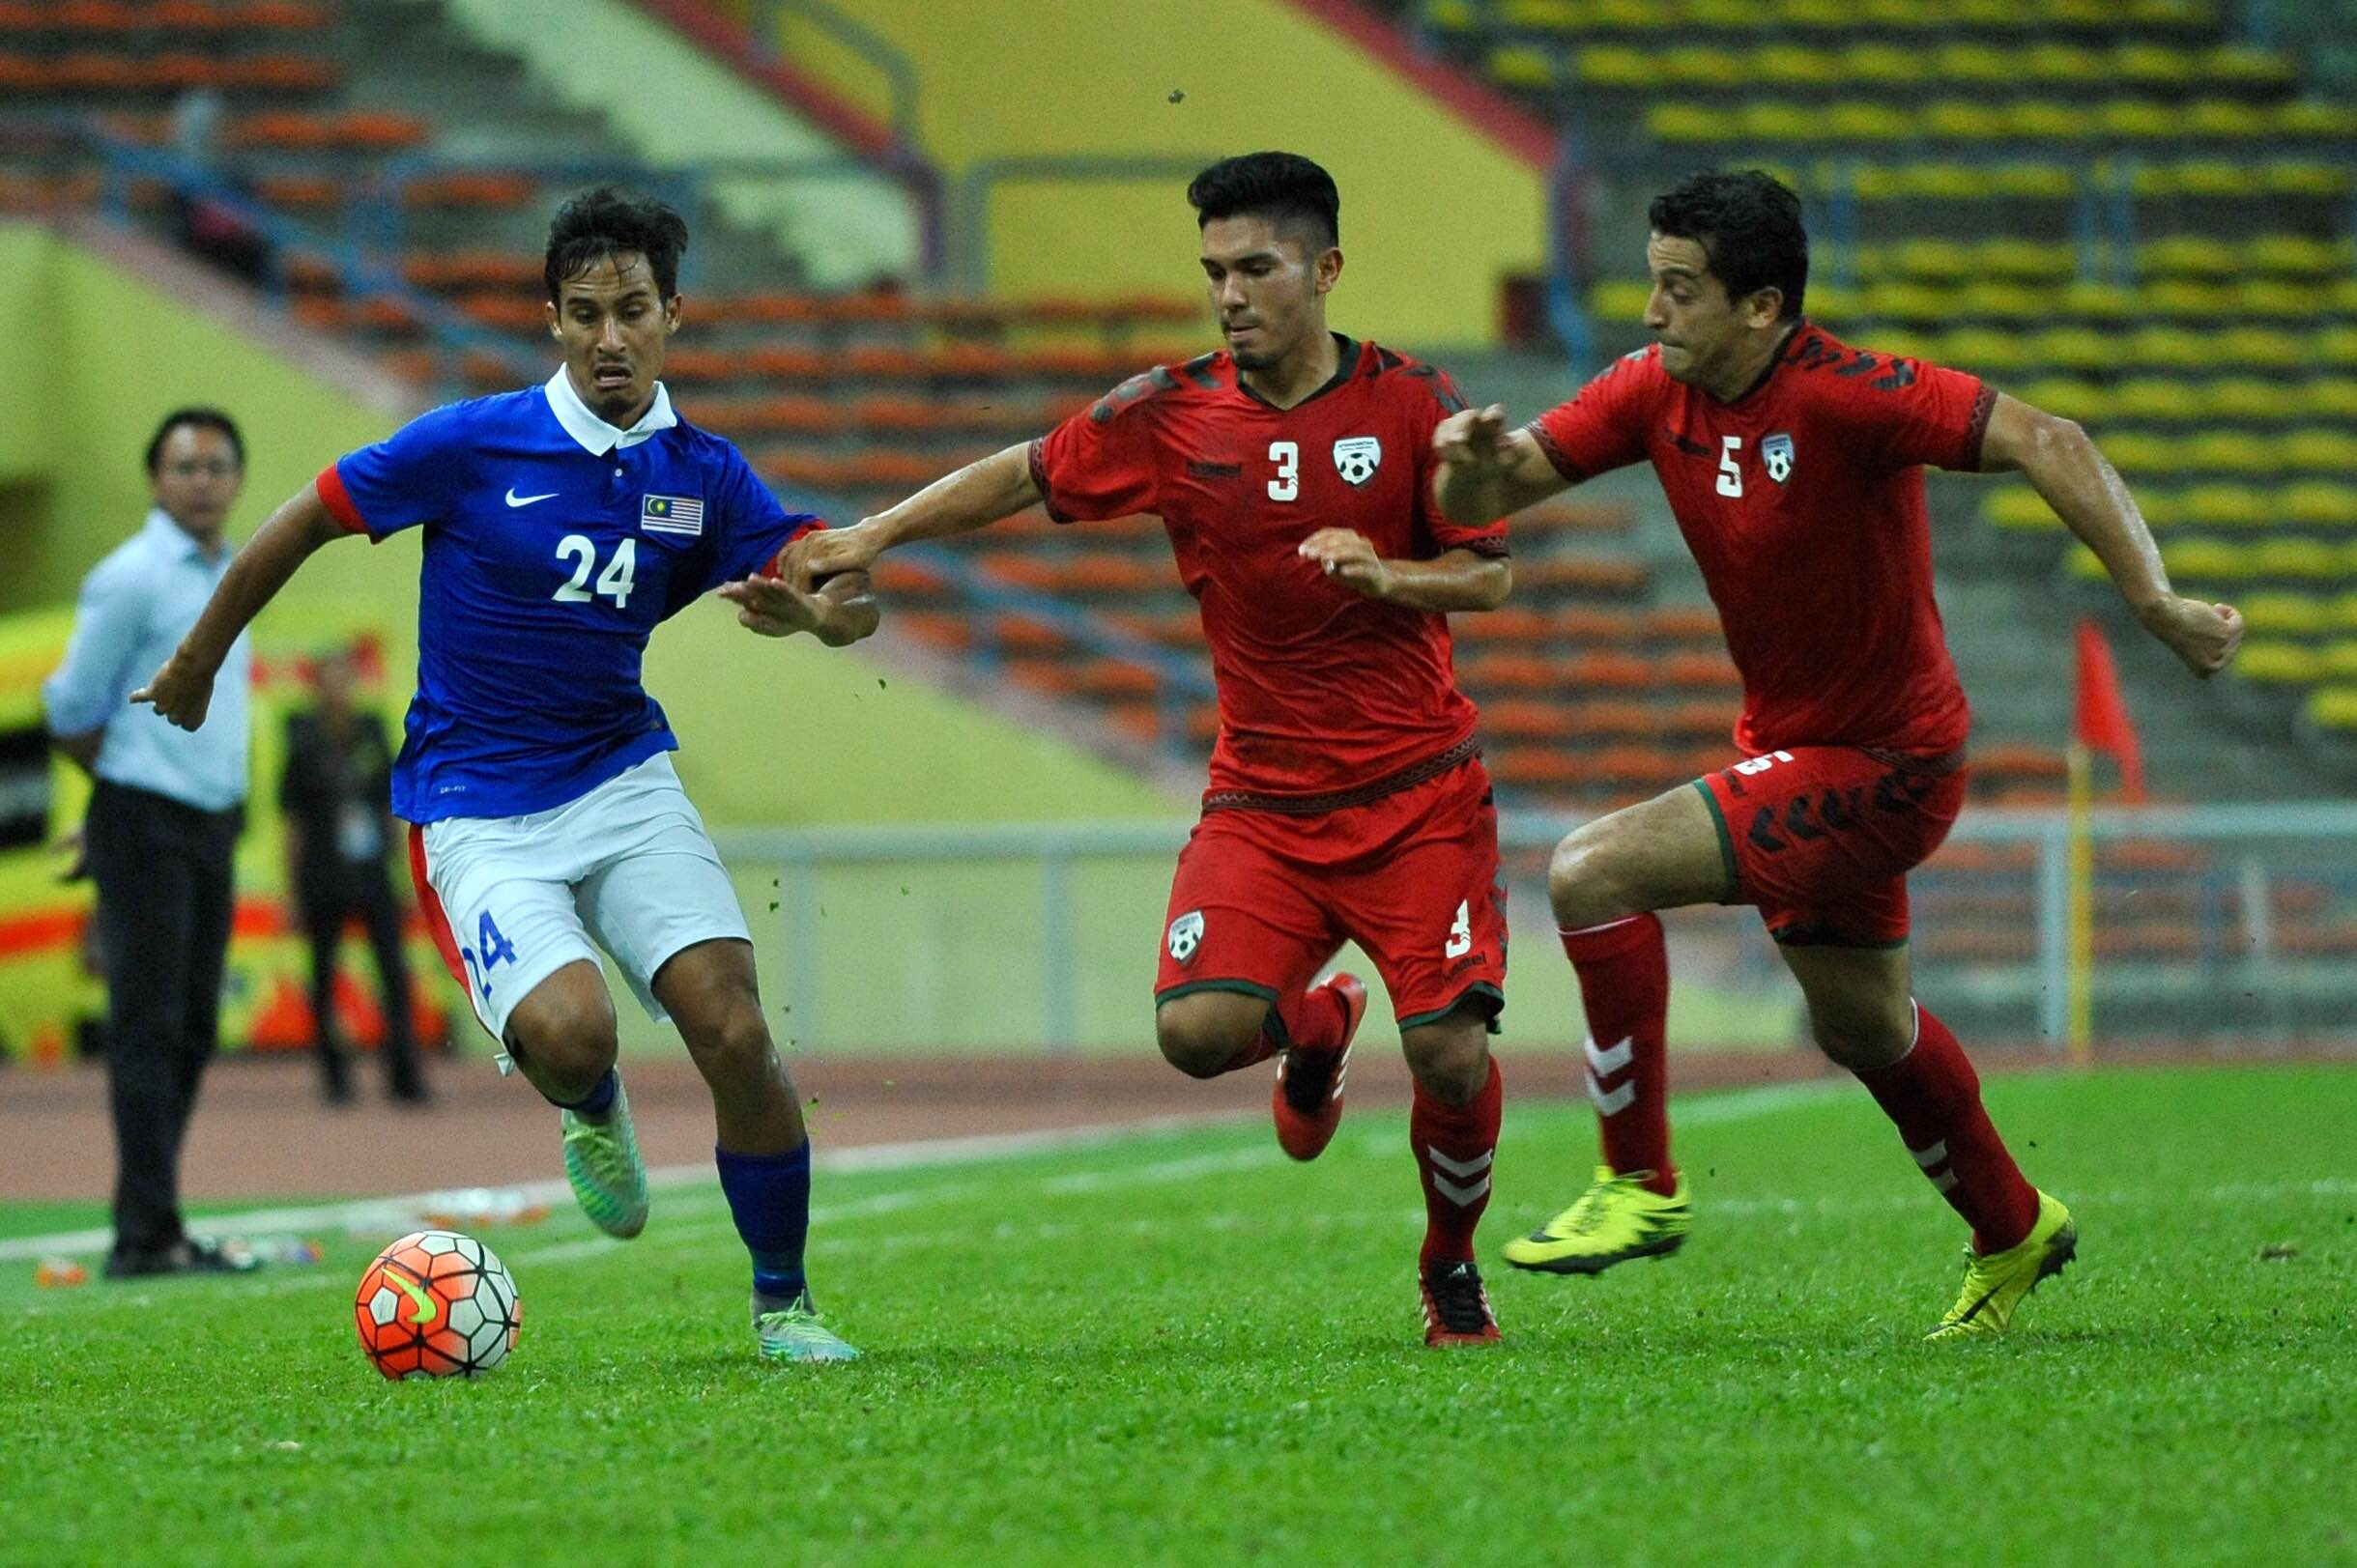 Malaysia's Matthew Davies in action against Afghanistan 11/10/16